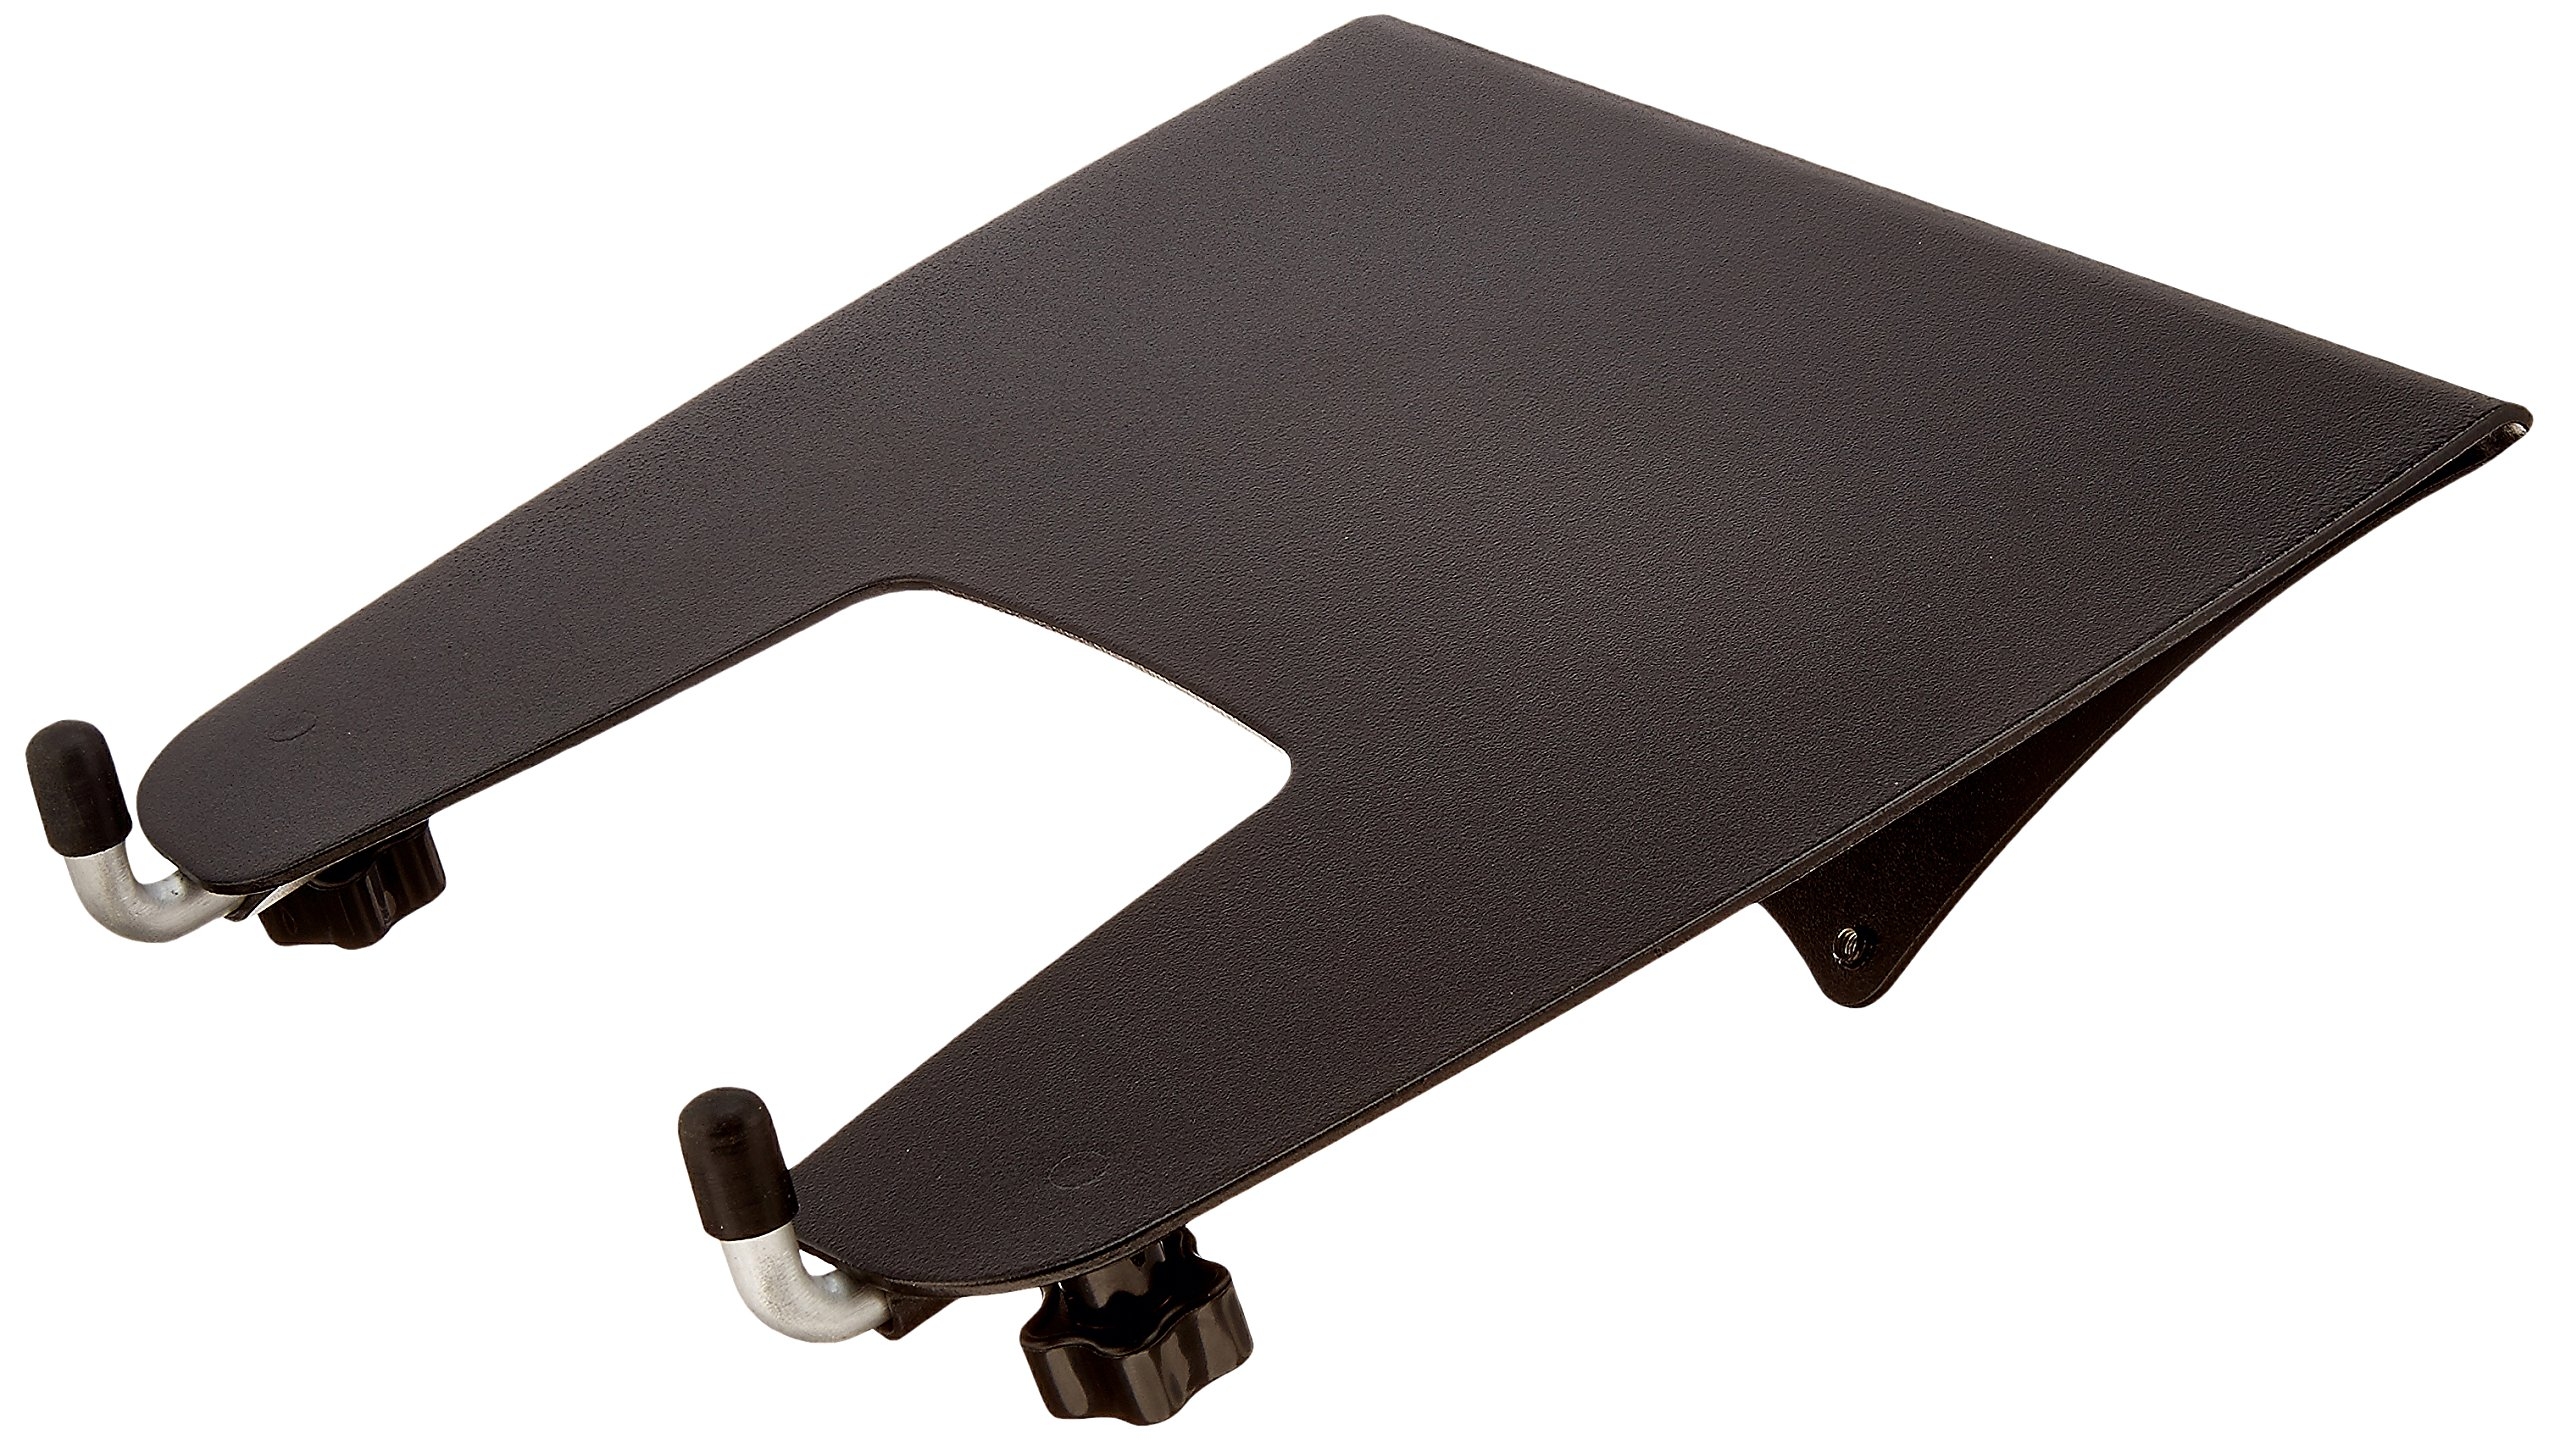 AmazonBasics Notebook Laptop Stand Arm Mount Tray by AmazonBasics